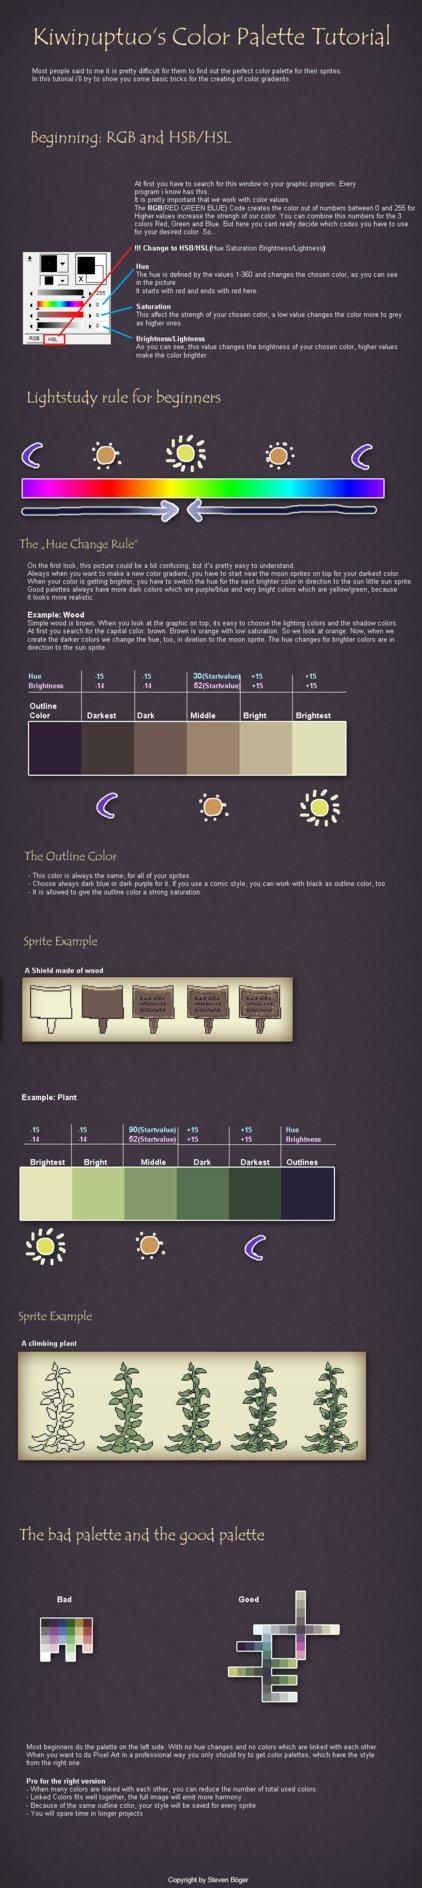 Pixel Art Tutorial Colors by Kiwinuptuo photoshop resource collected by psd-dude.com from deviantart